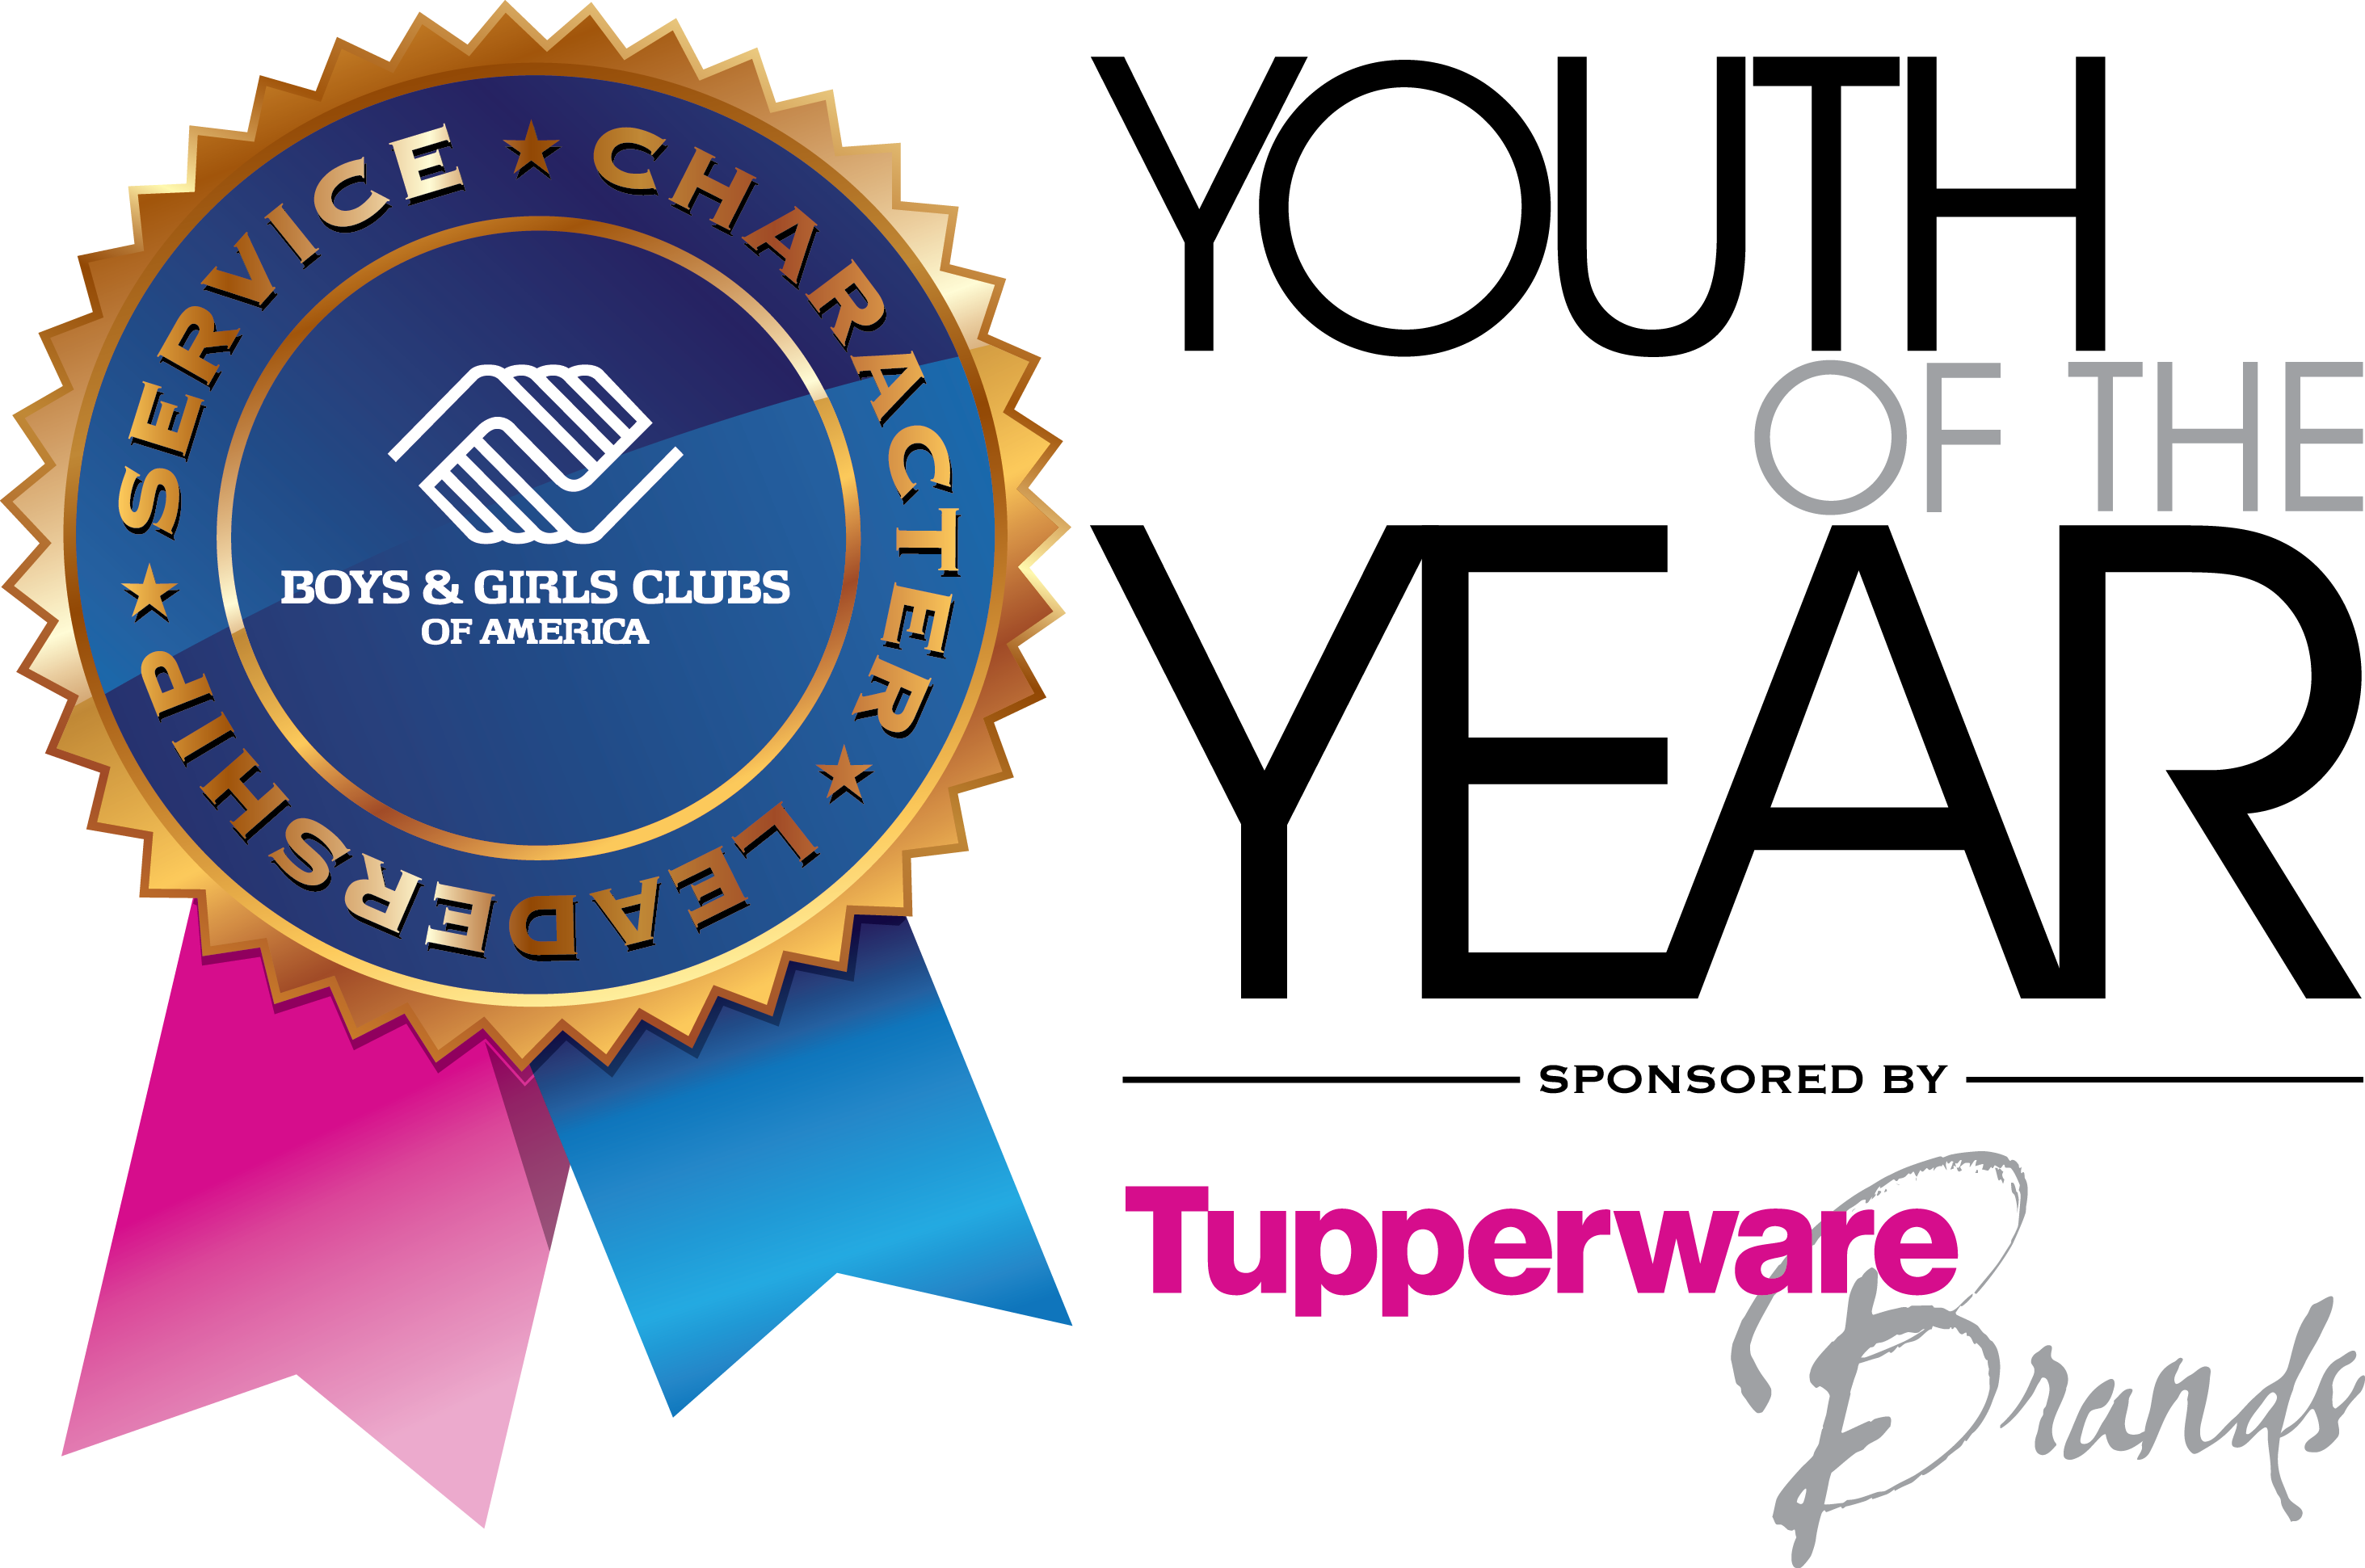 Club clipart youth leadership Premier & Clubs of